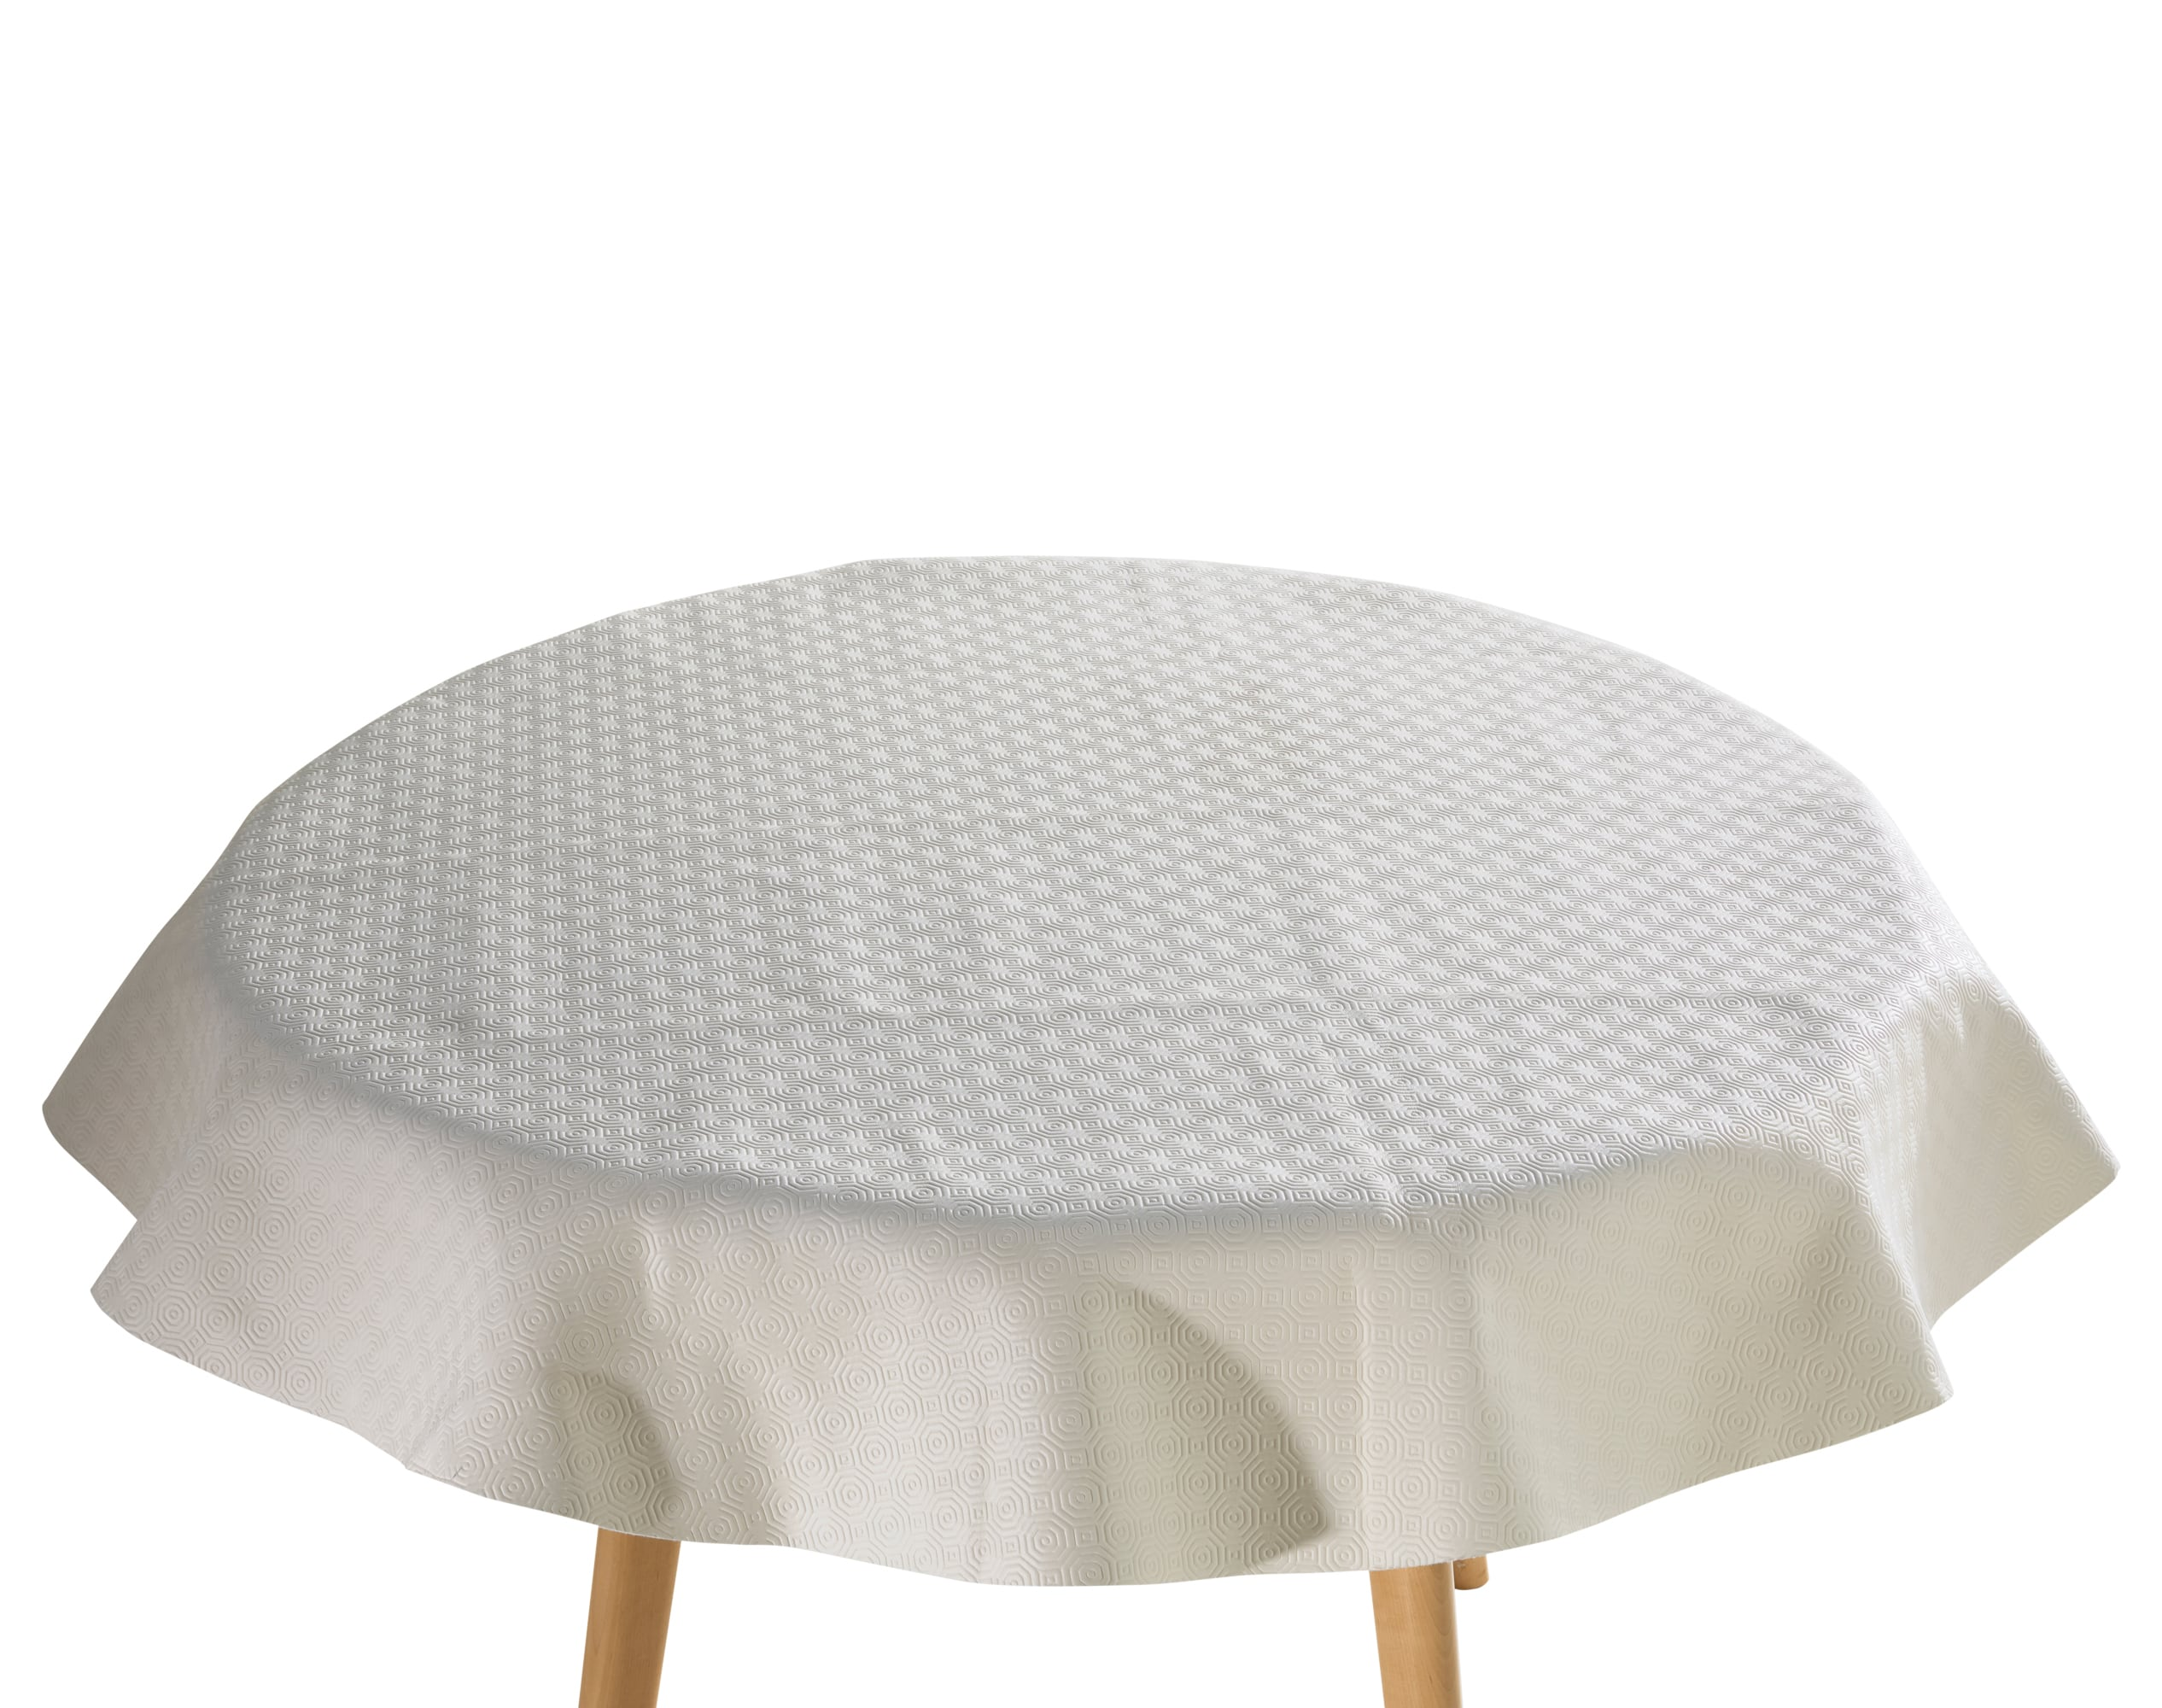 Protège-table luxe rectangulaire blanc 105x220